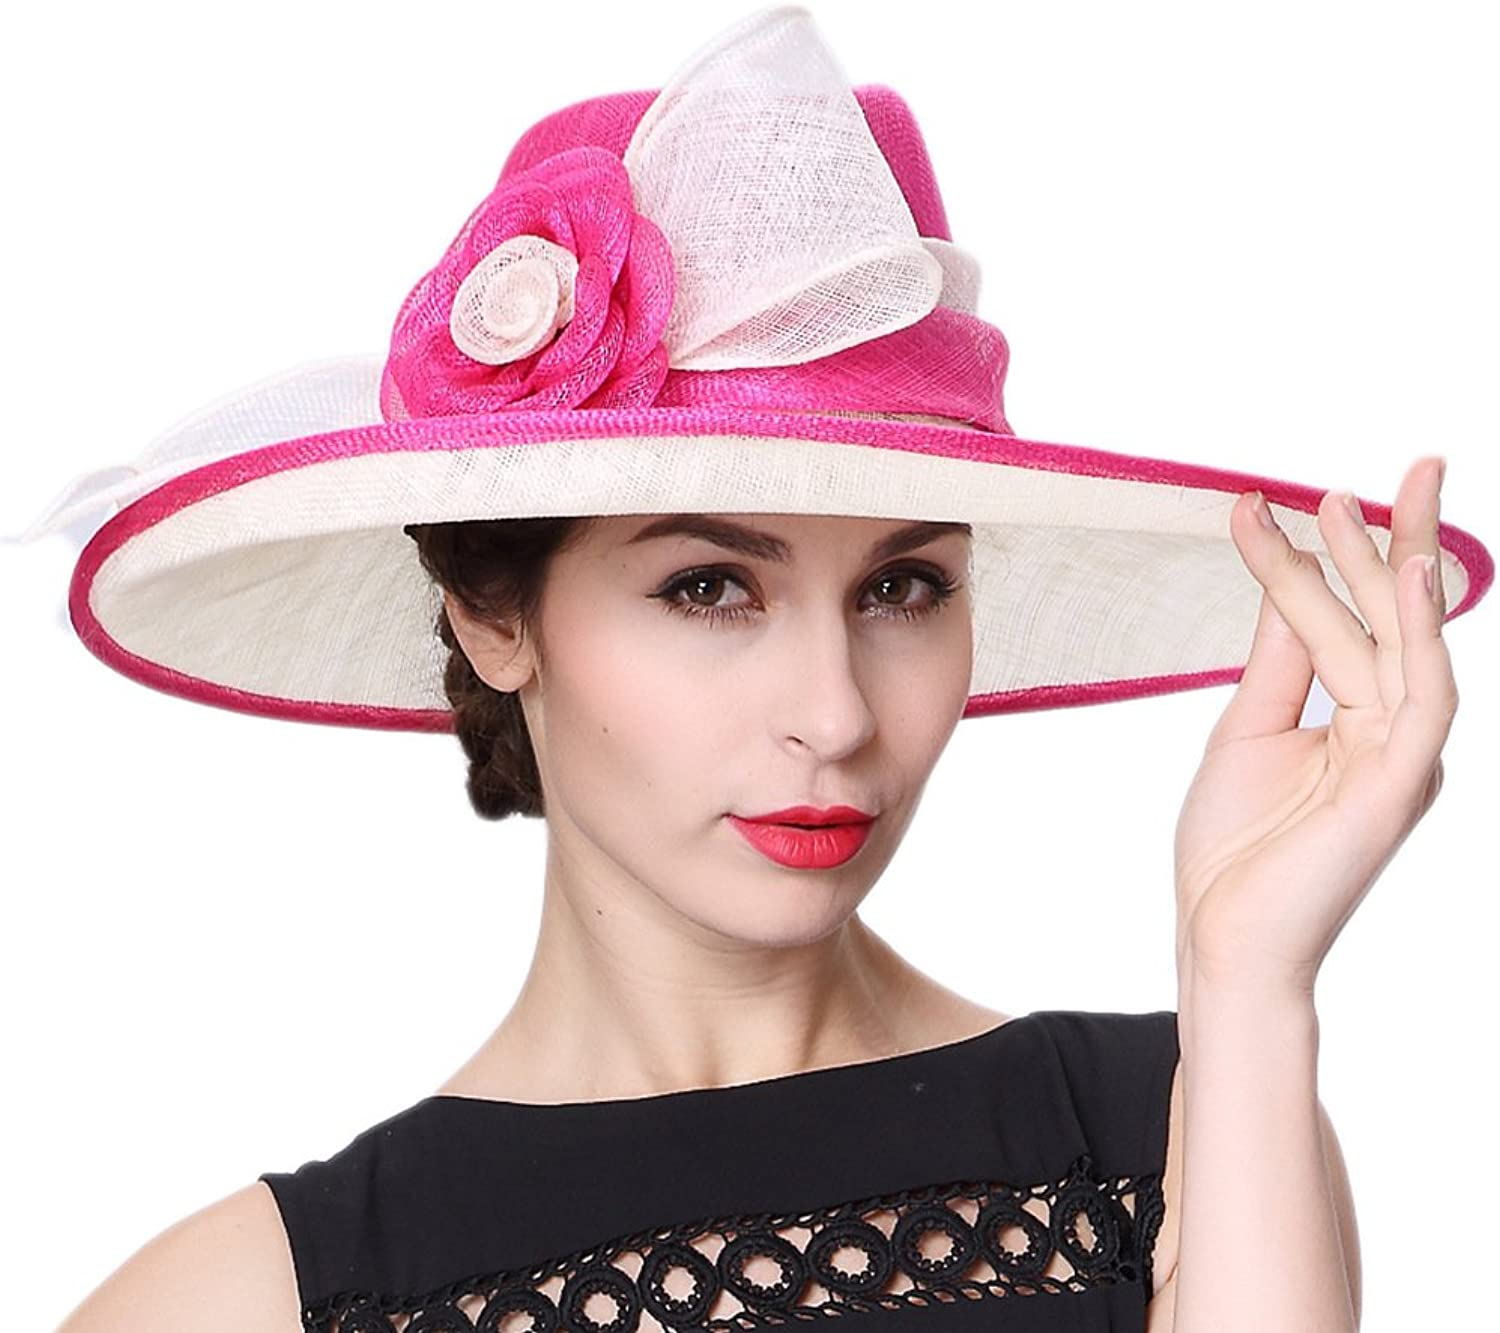 Koola's hats Lady Ascot Race Derby Hat 3 Layers Sinamay Wedding Hats pink red White